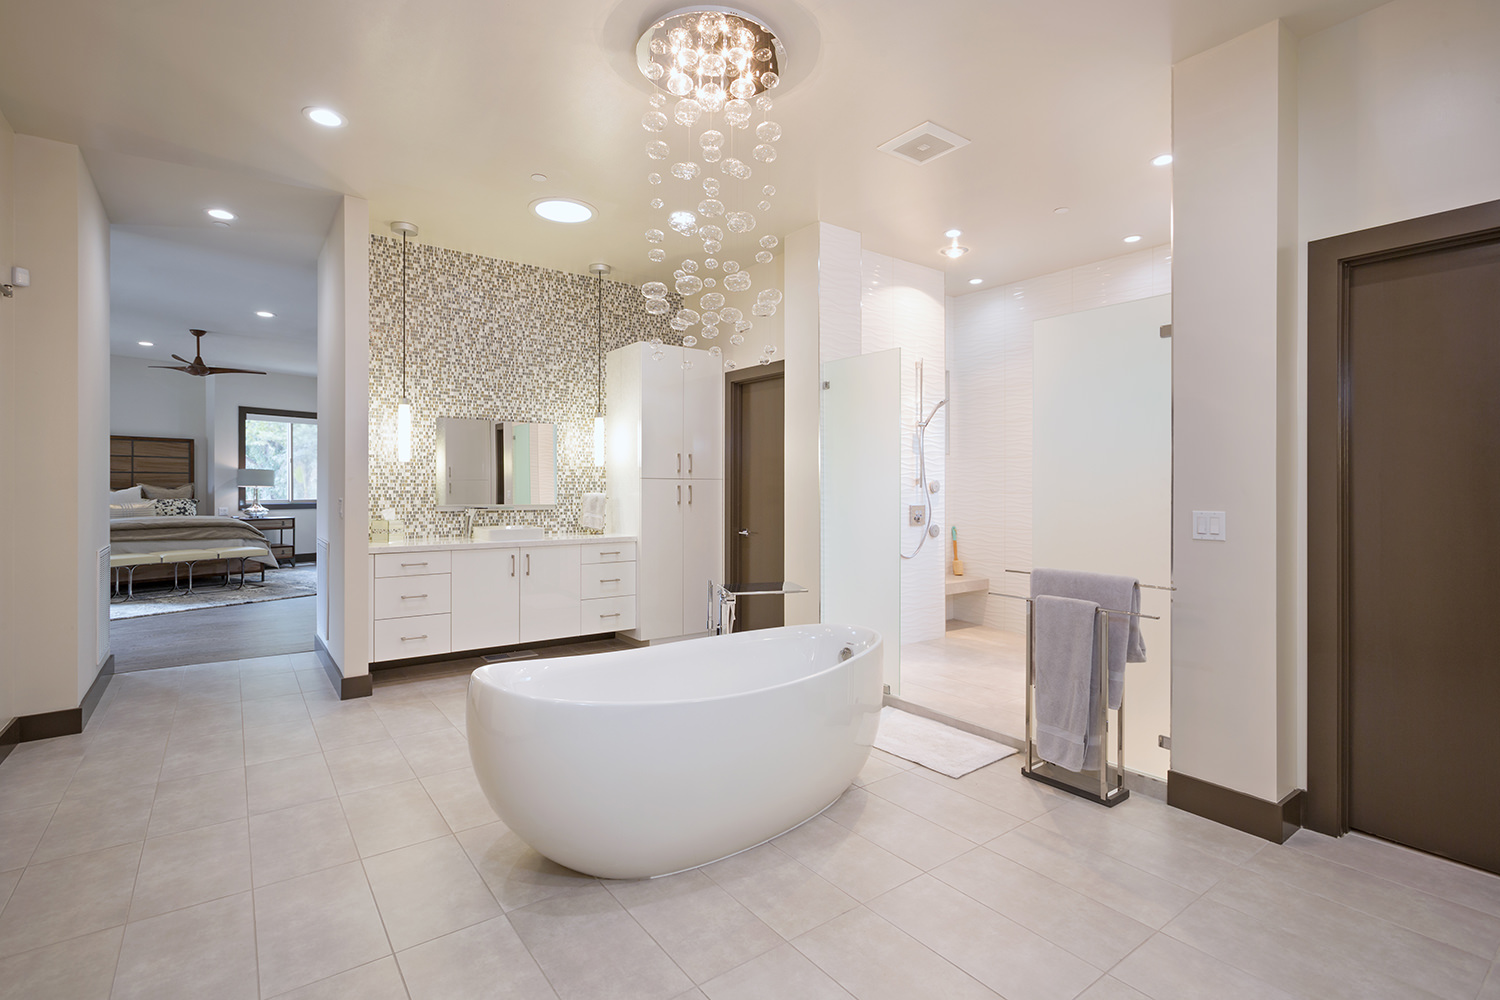 bathroom-interior-design-los-altos-california-ktj-design-co-10.jpg